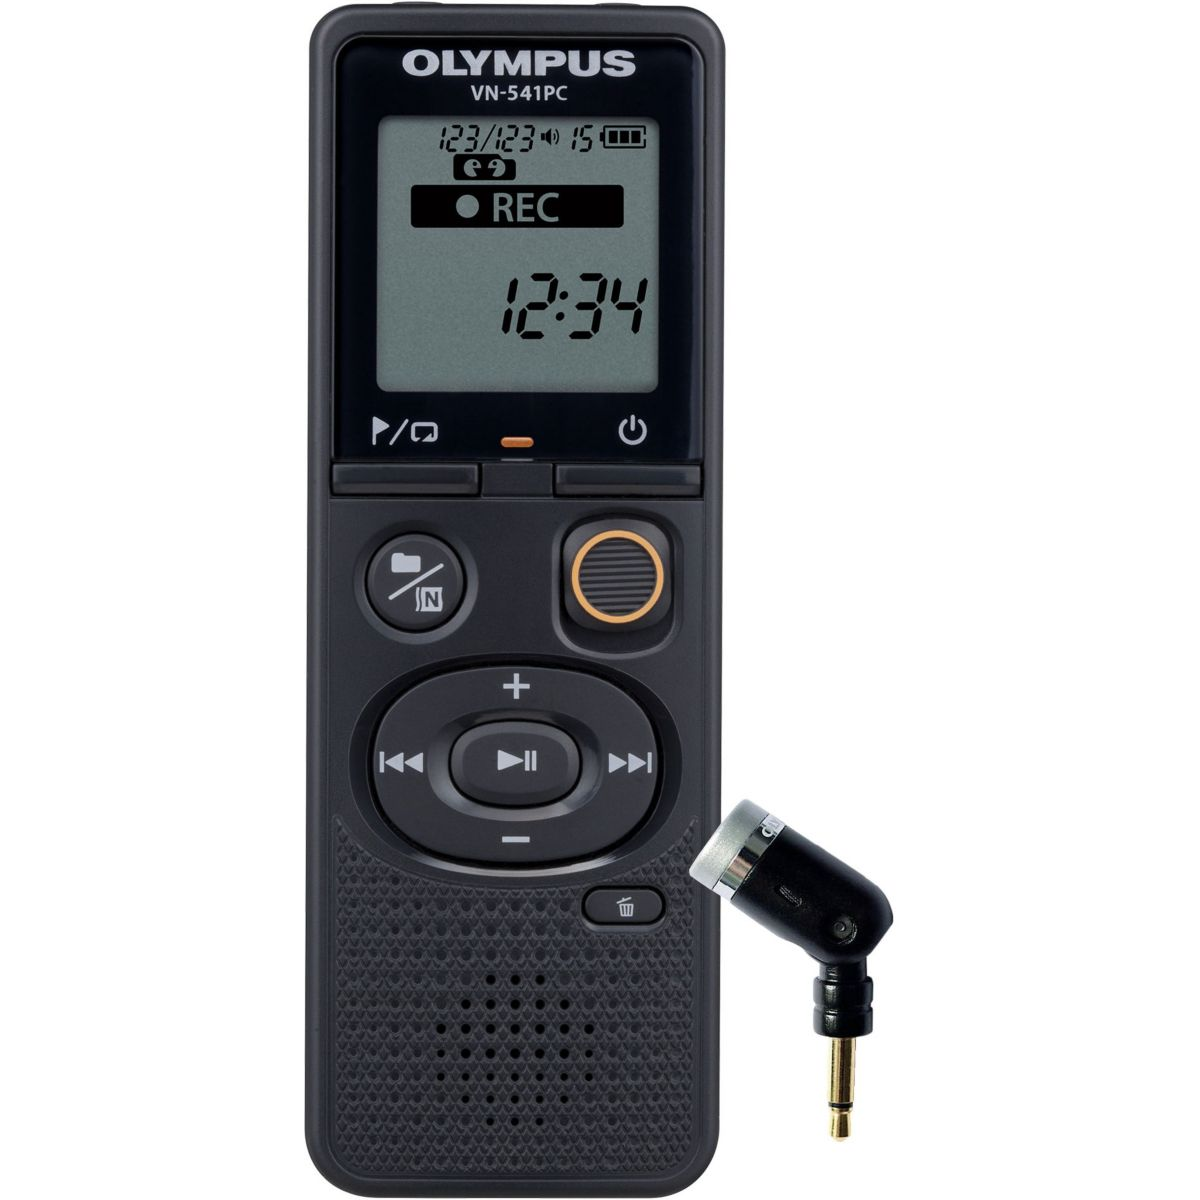 Dictaphone OLYMPUS VN-541PC + Microphone ME-52 (photo)